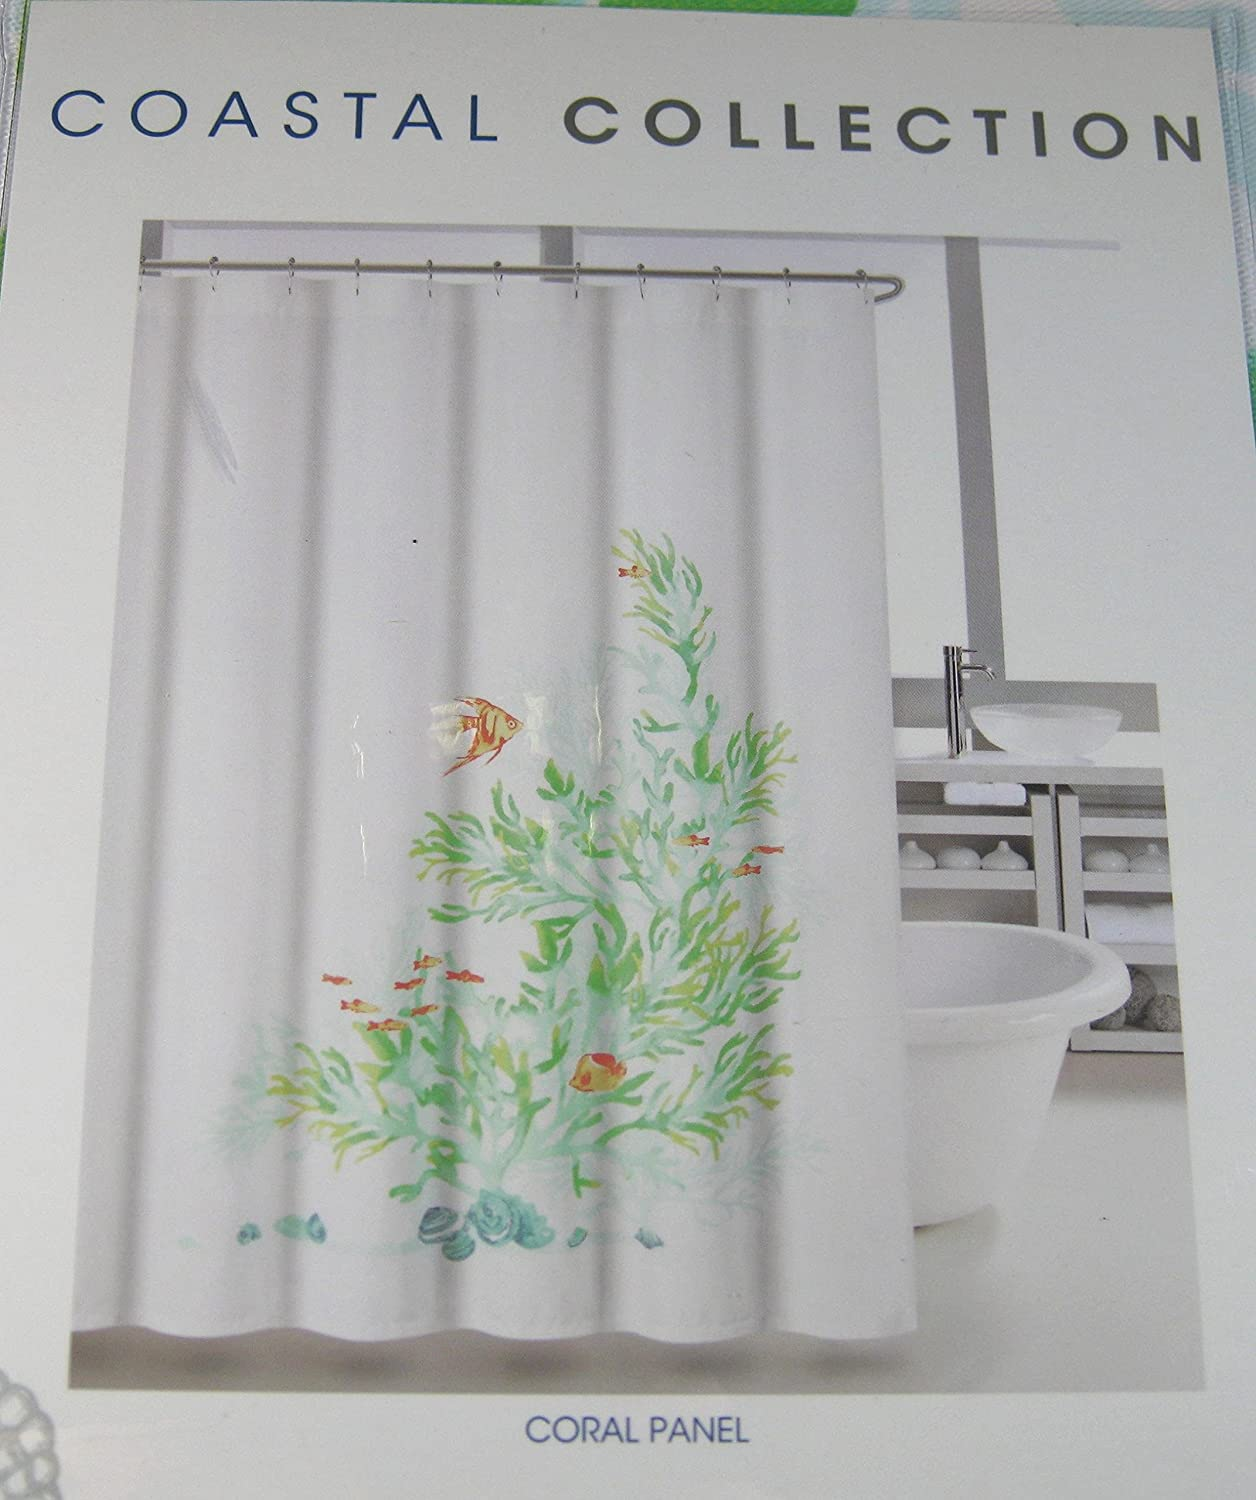 Amazon Coastal Collection Shower Curtain Coral Panel 72 X Home Kitchen